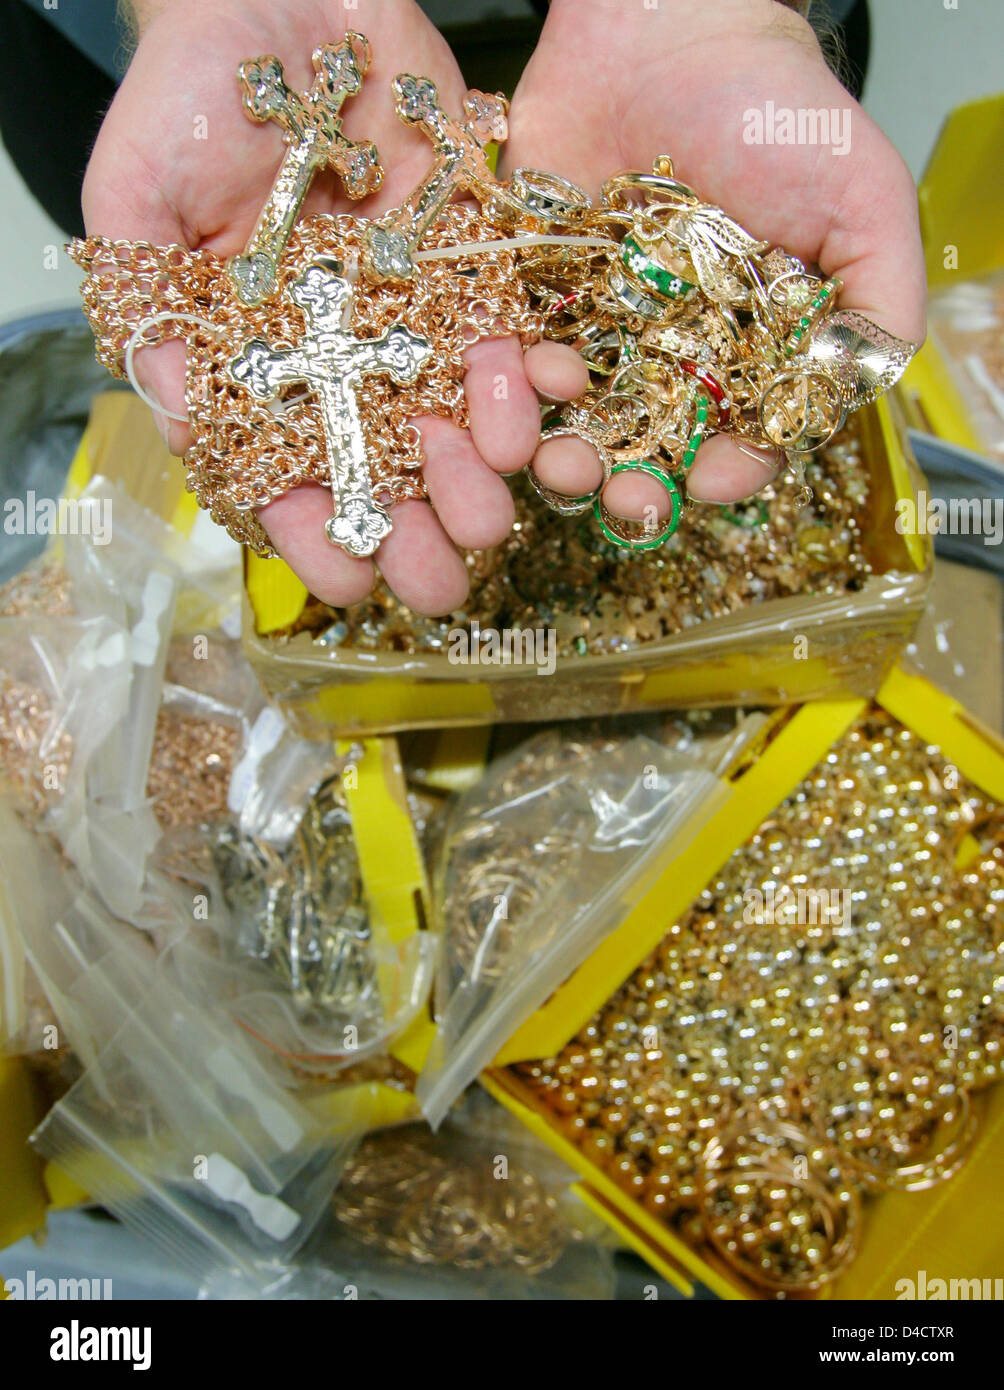 German Customs Officers Present A Seized Gold Jewellery At The Airport Of Frankfur Main Germany 21 February 2008 More Than 63 Kilograms